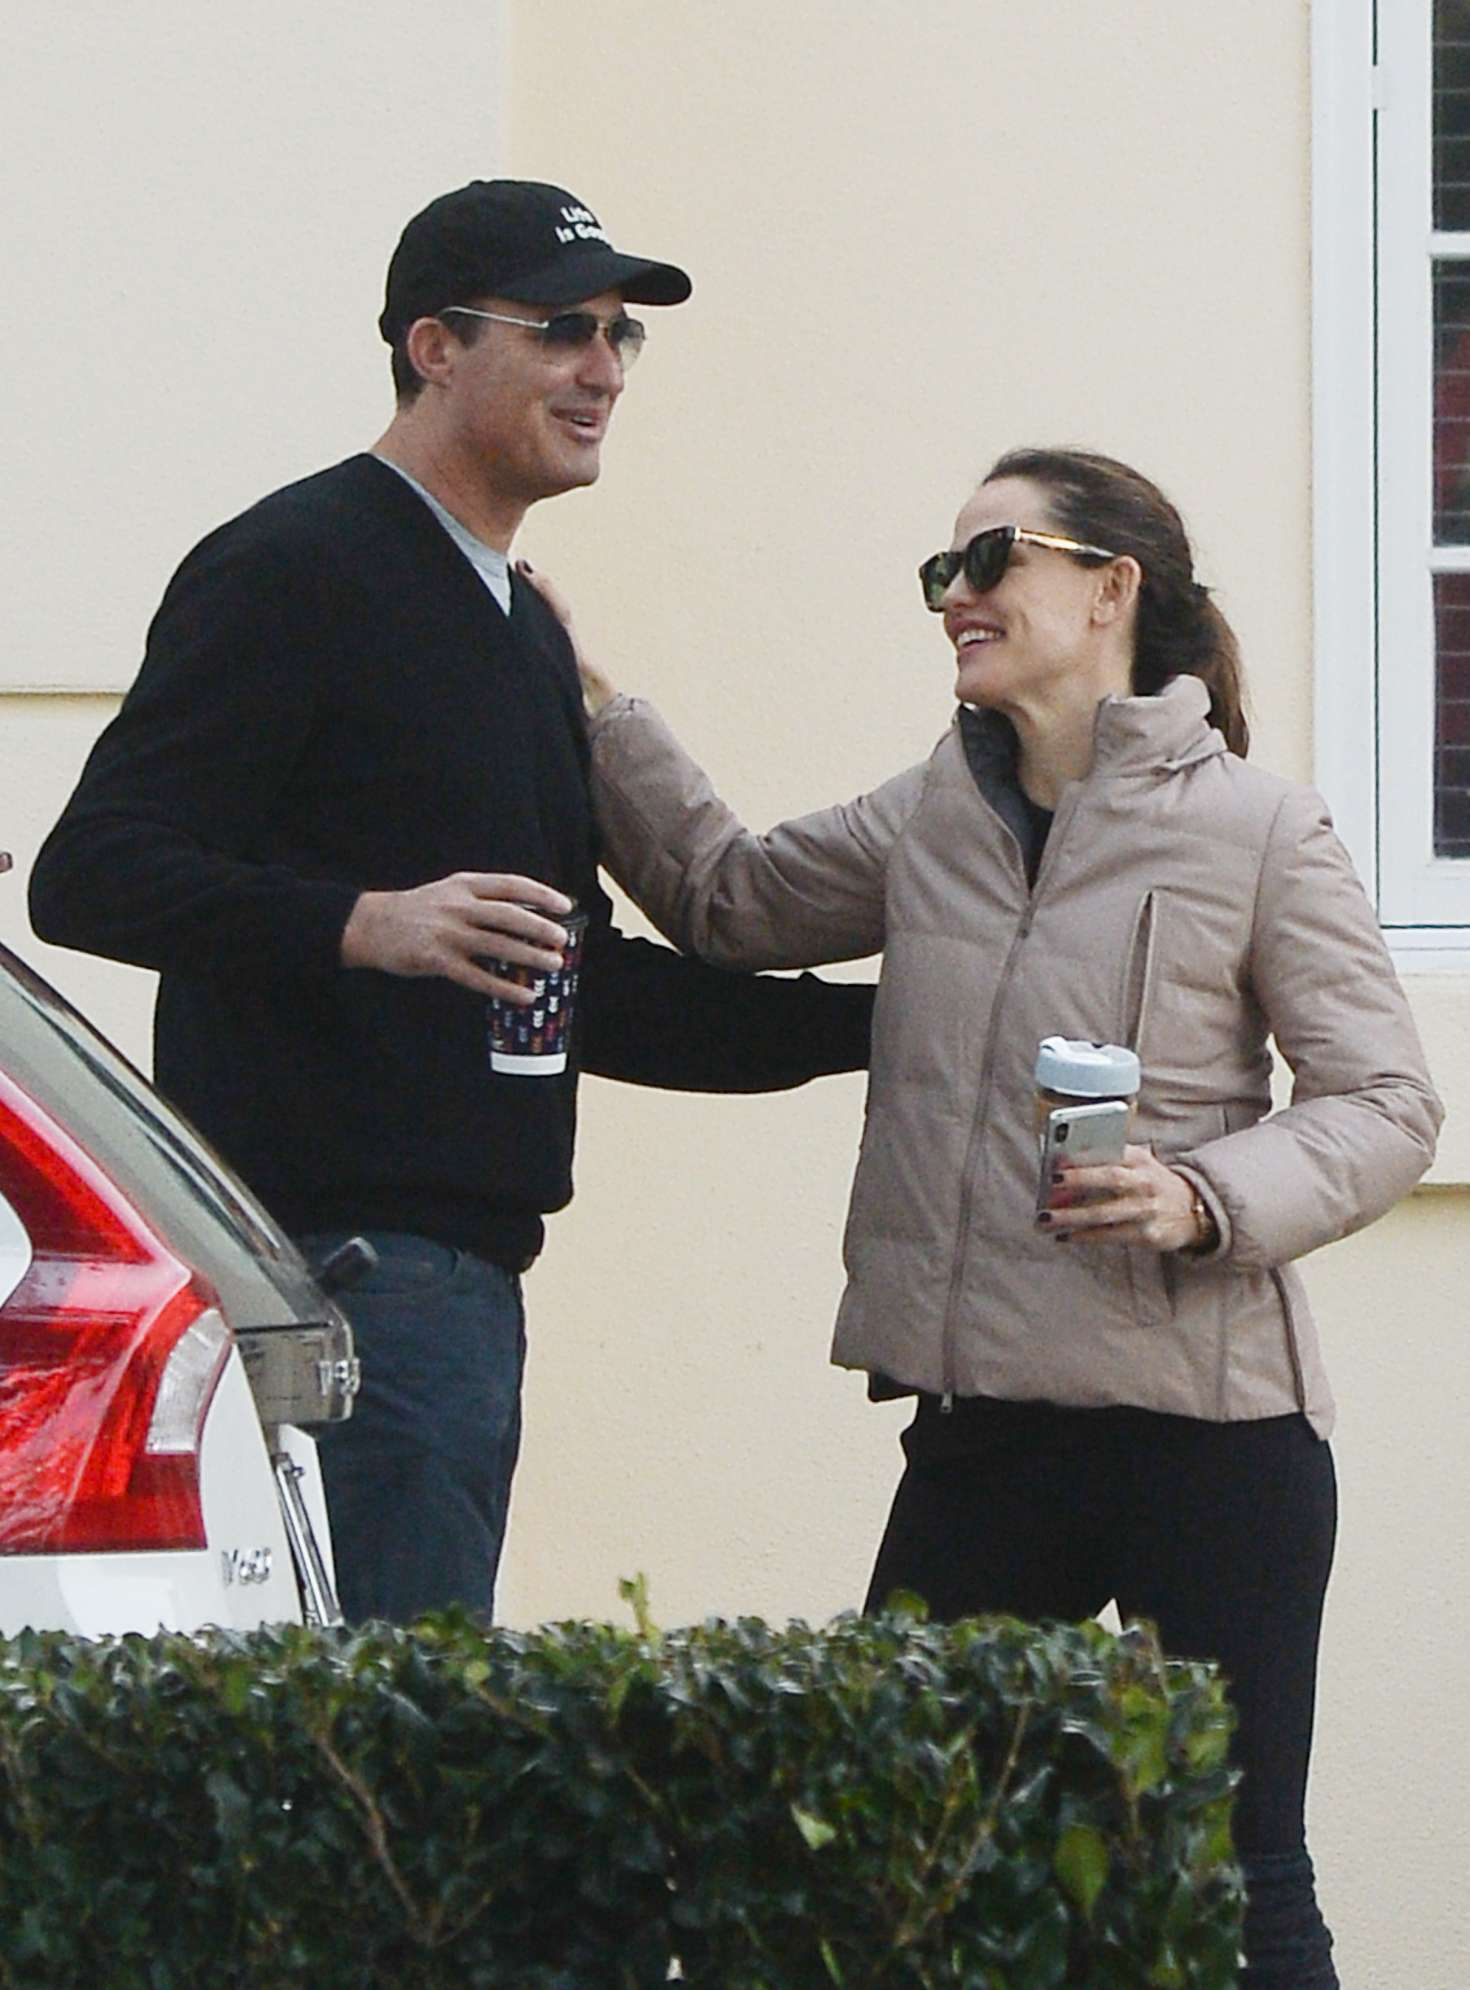 Jennifer Garner with friend out in Los Angeles